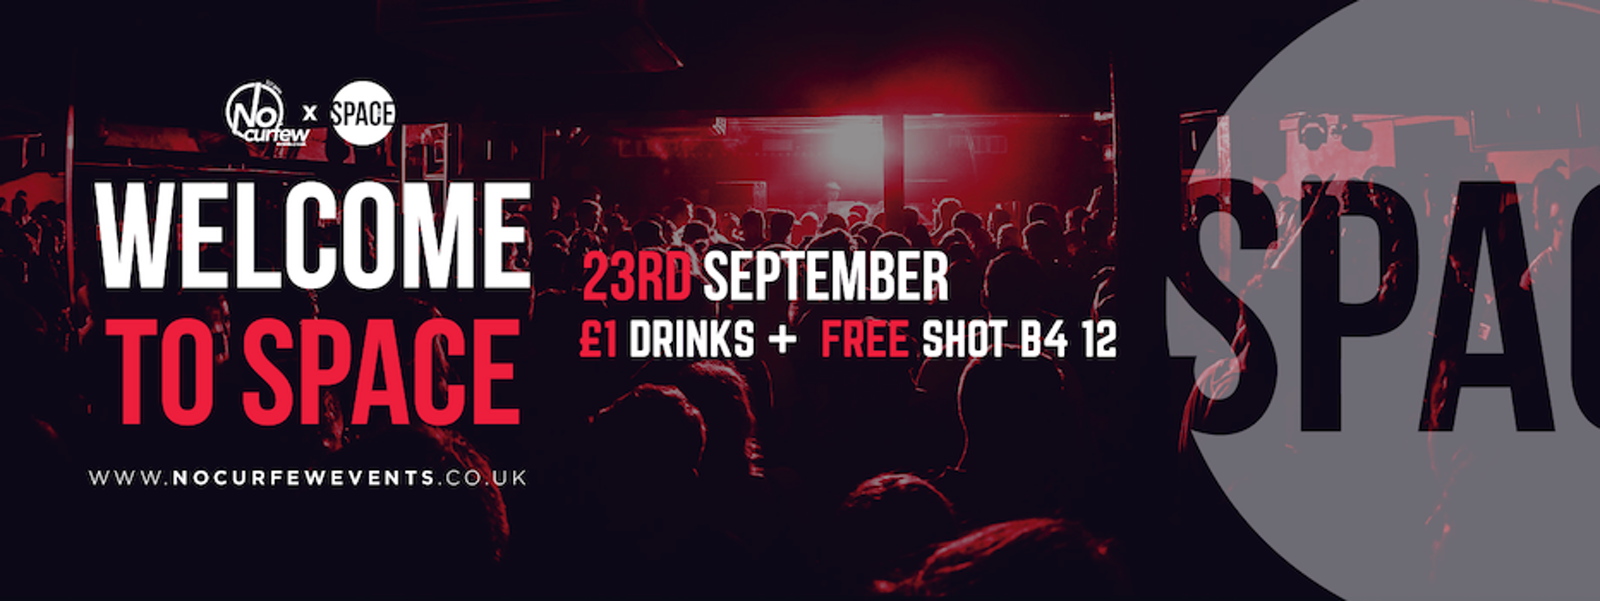 Welcome to Space :: Mon 23rd September :: £1 Drinks